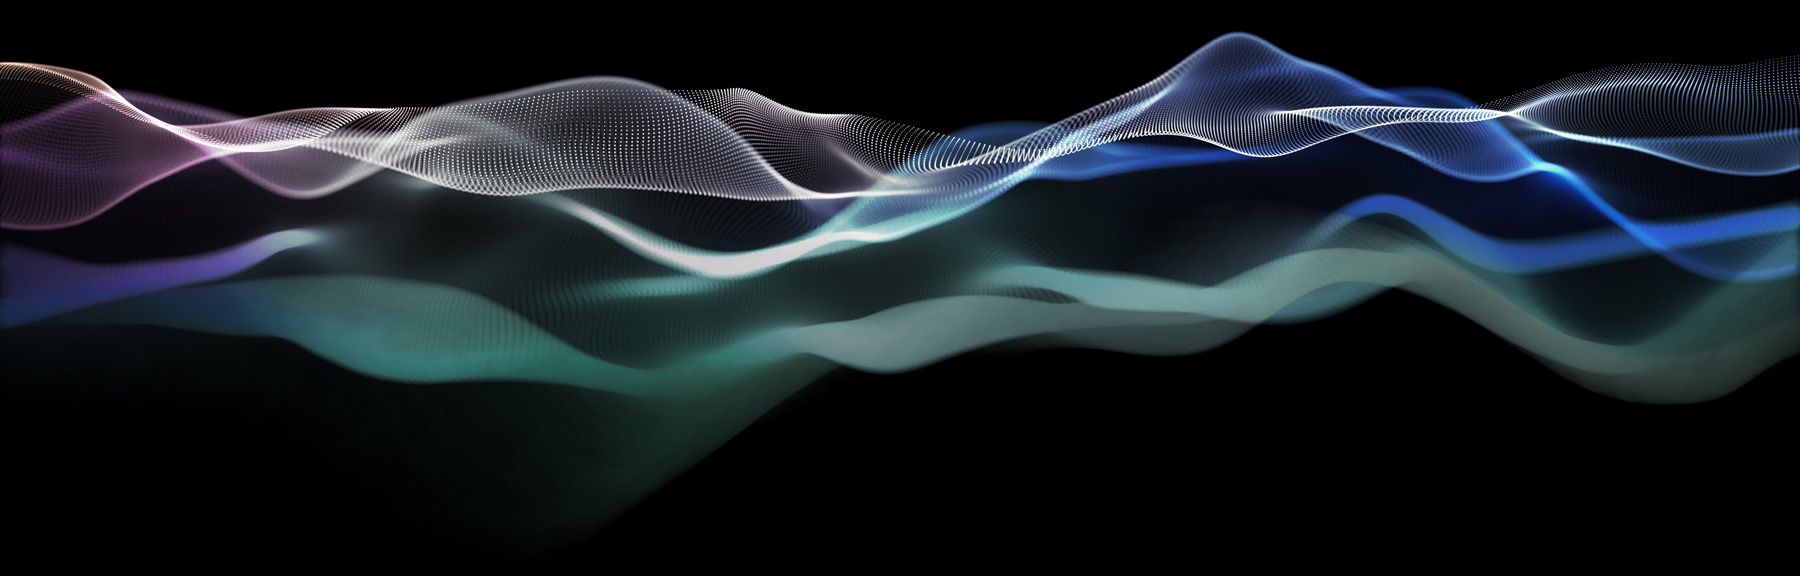 Flowing particles